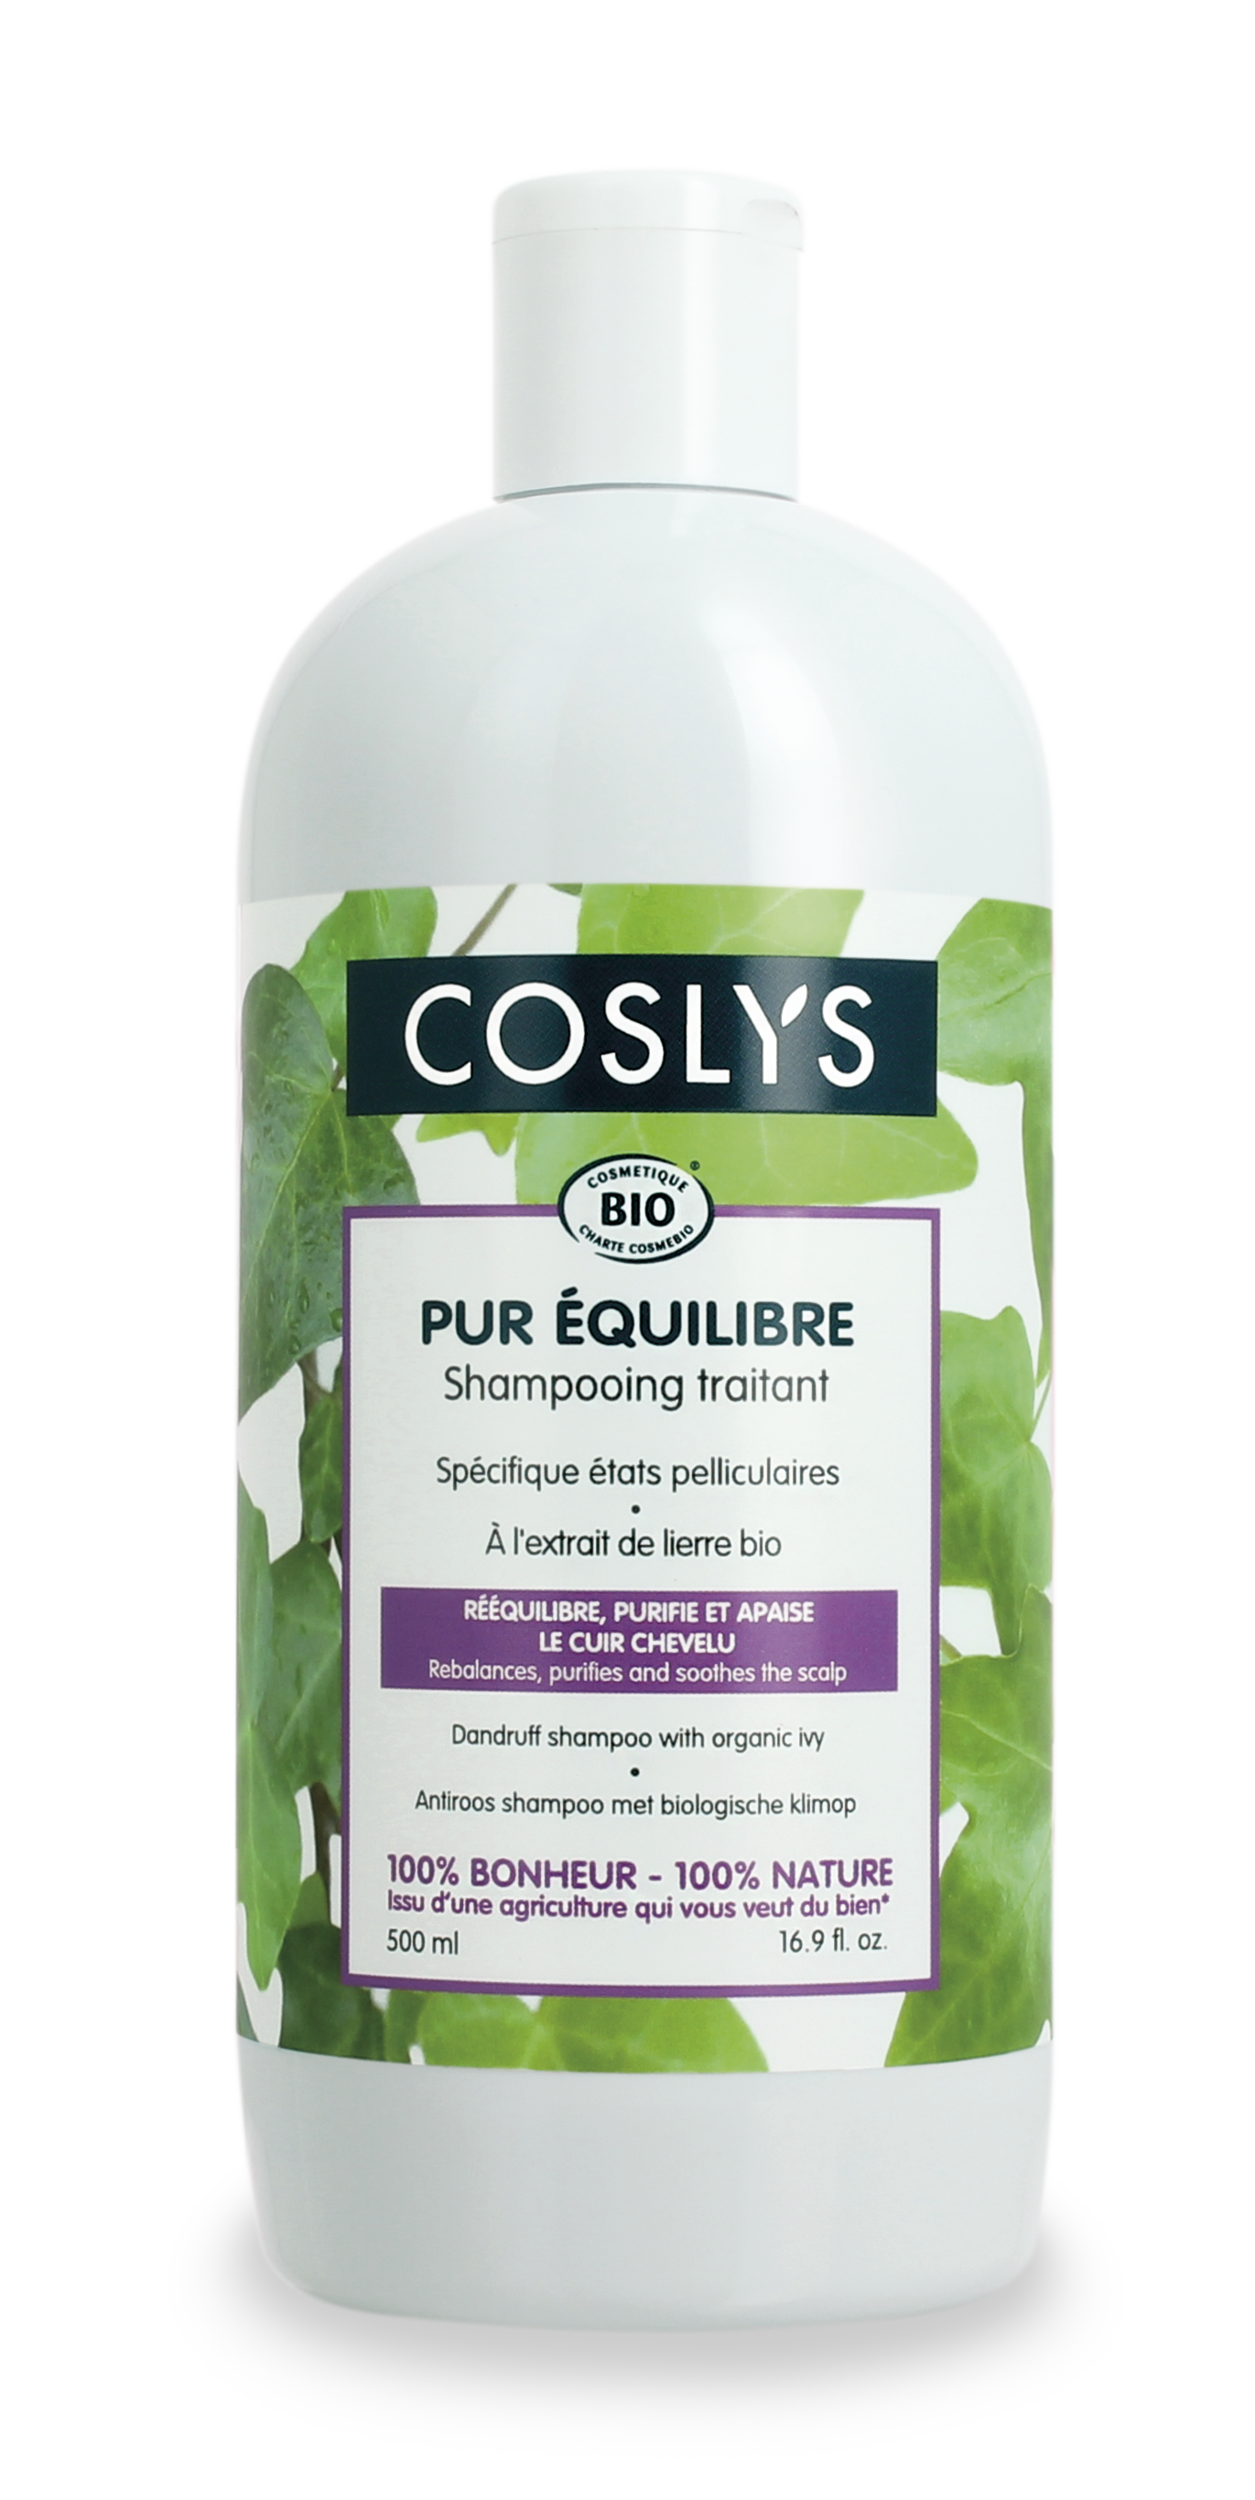 Coslys-Shampoing antipelliculaires 500ml